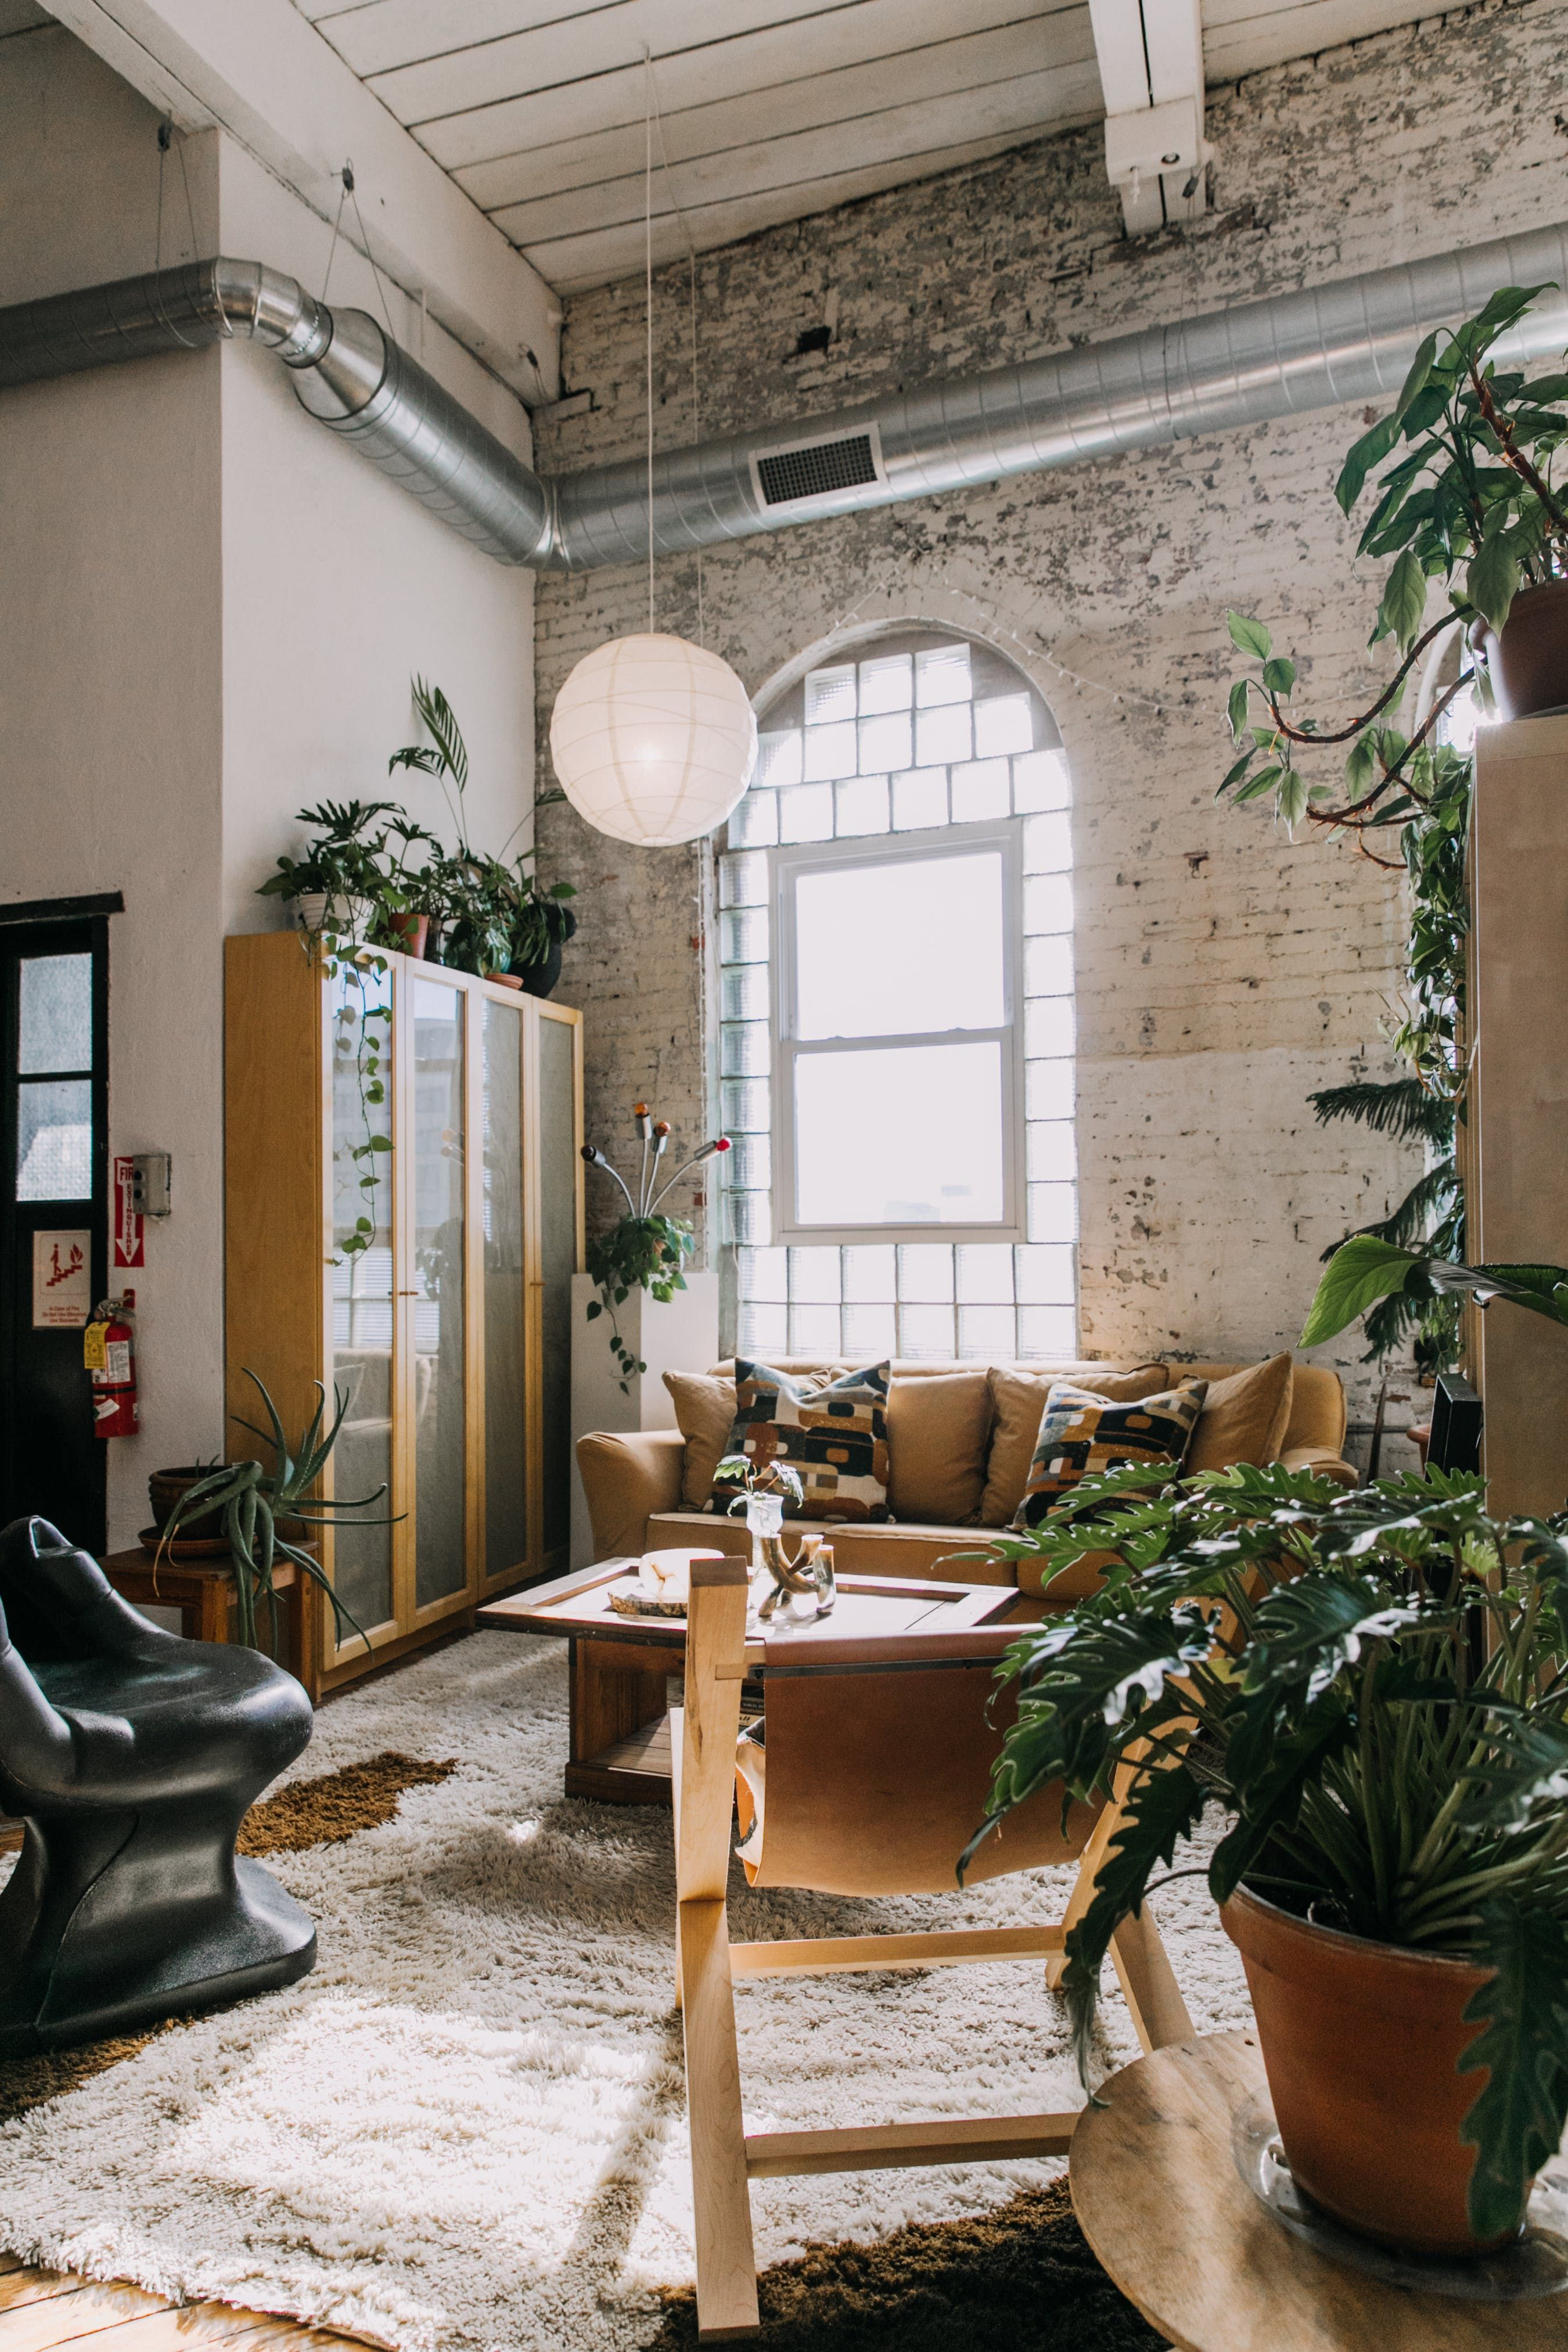 A Sunny Stunning Loft Apartment In An Old Textile Factory Loft